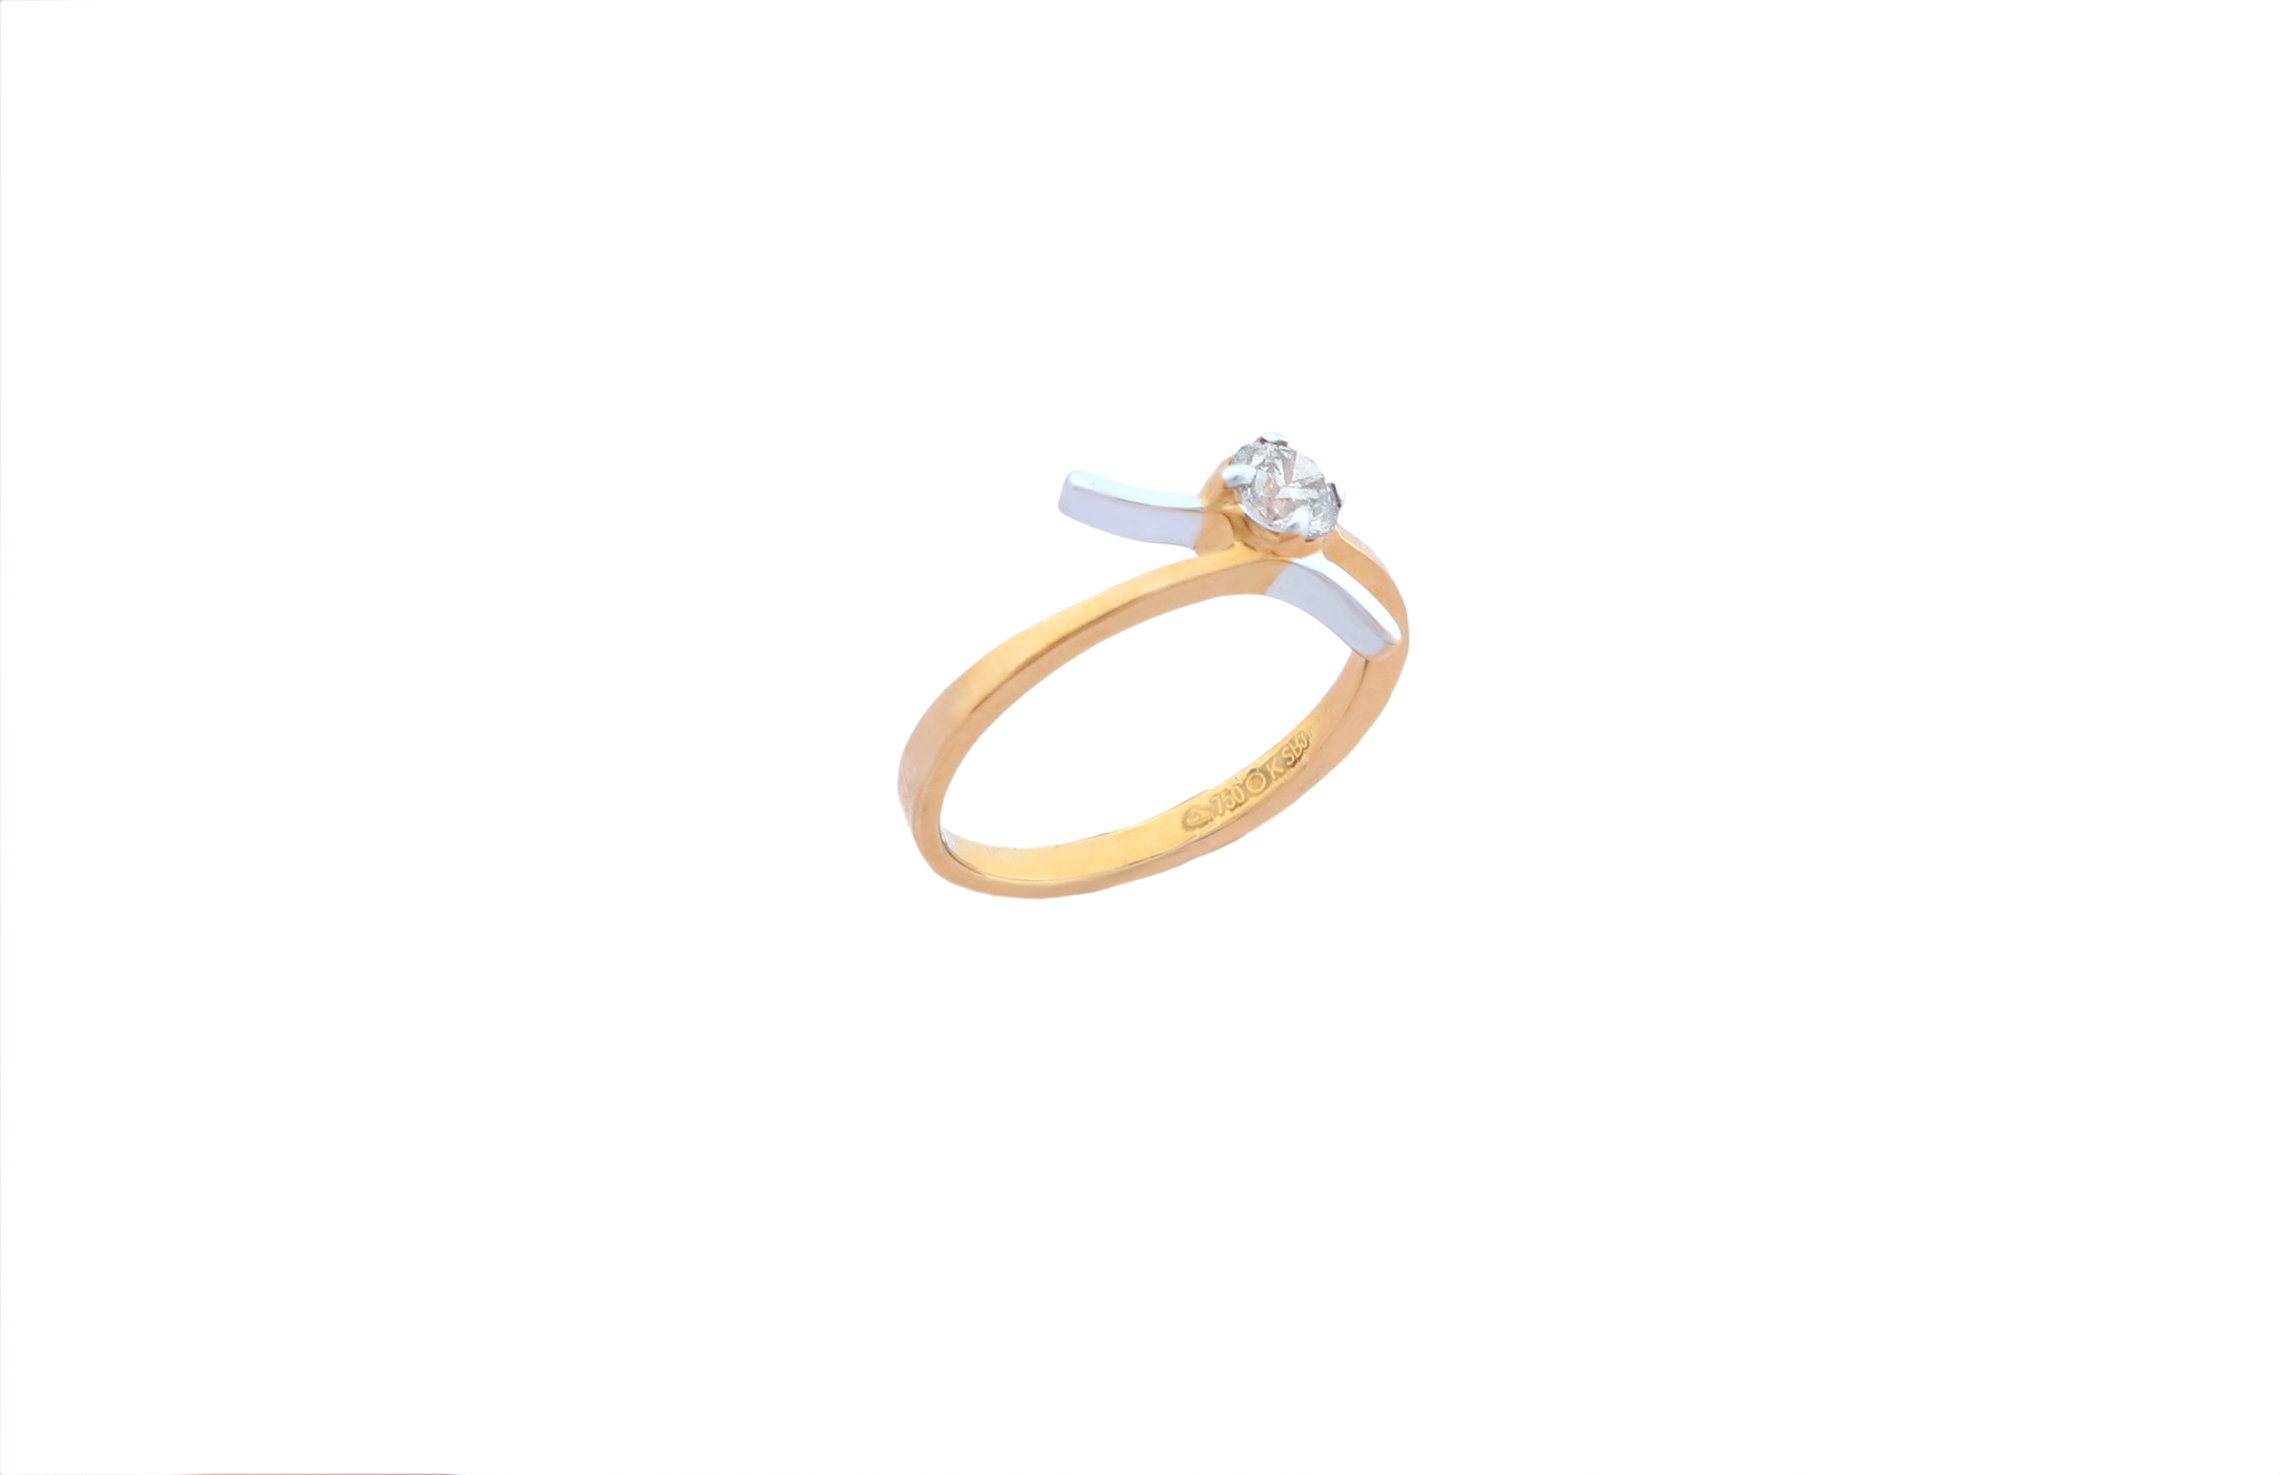 0.43 CT ROUND CUT SI CLARITY DIAMOND SOLITAIRE ENGAGEMENT RING 18KT YELLOW GOLD